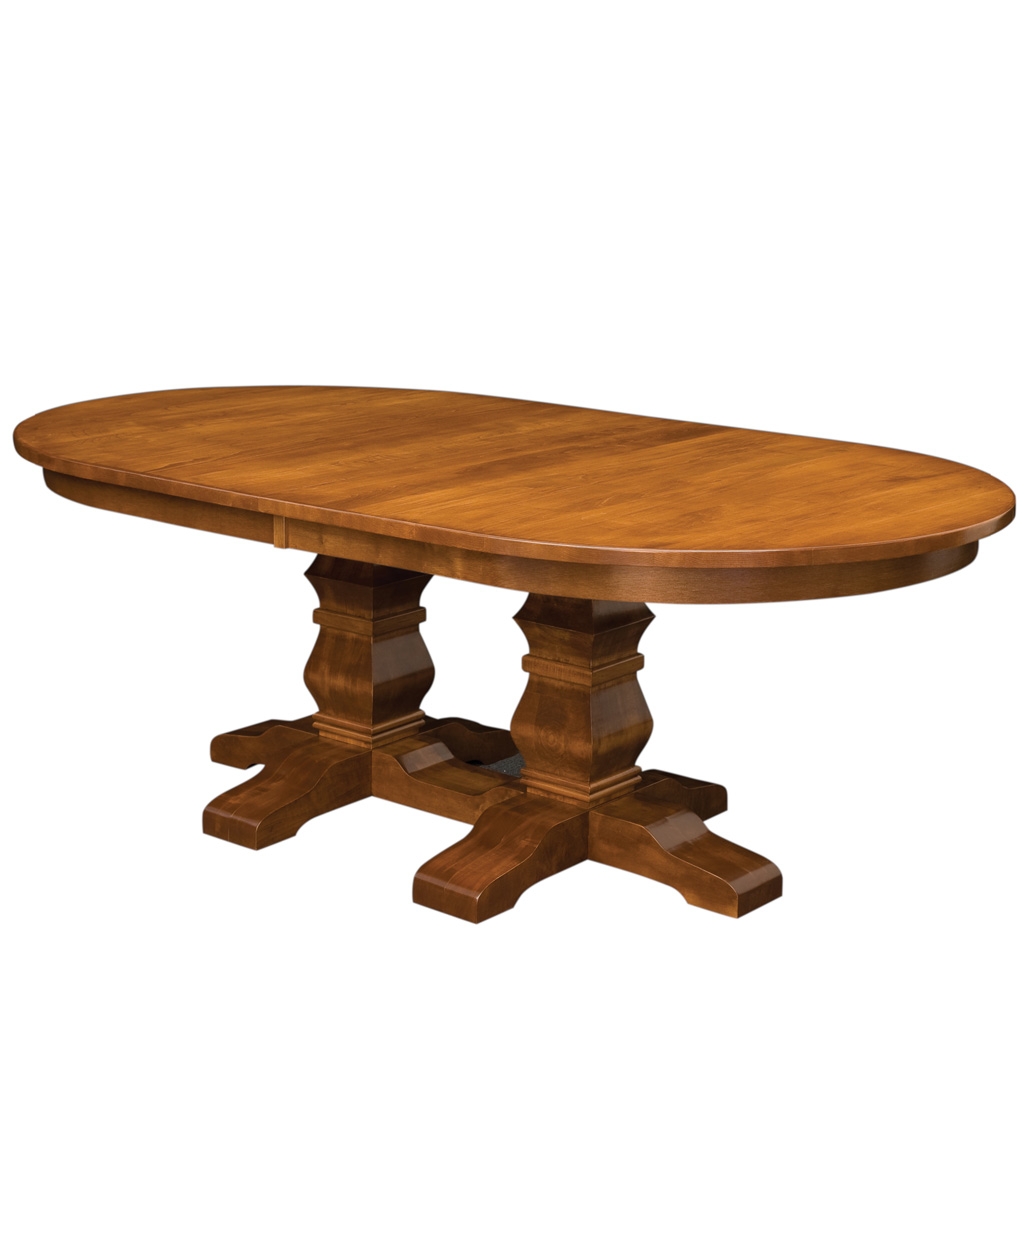 Bradbury Trestle Amish Table